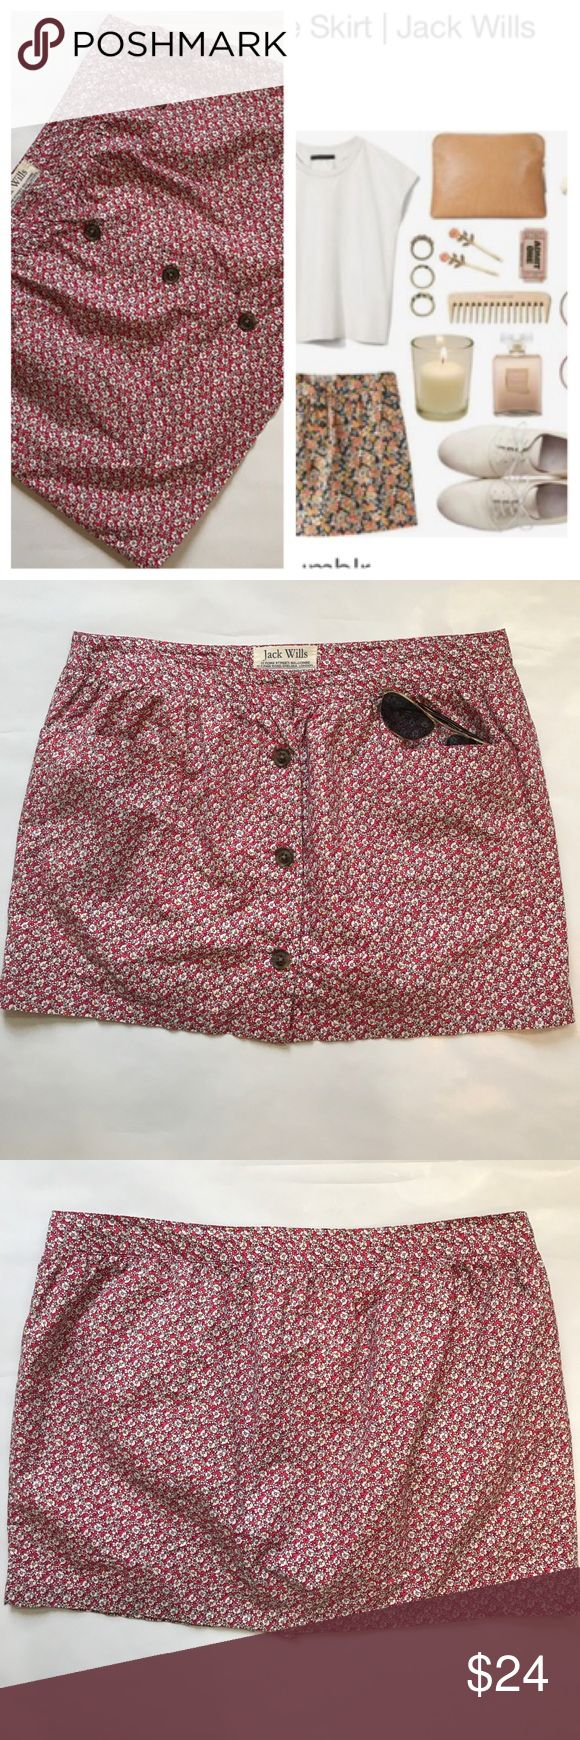 "🌸 Jack Wills Floral Skirt with Pockets 🌸 This cute skirt is perfect for summertime!  It is missing the top button, but the hooks are still there to fasten it with. This skirt measures approx. 14"" in length.  According to the brands website, this should fit you if your waist measures 29"" and your hips are 39"". Jack Wills Skirts Mini"